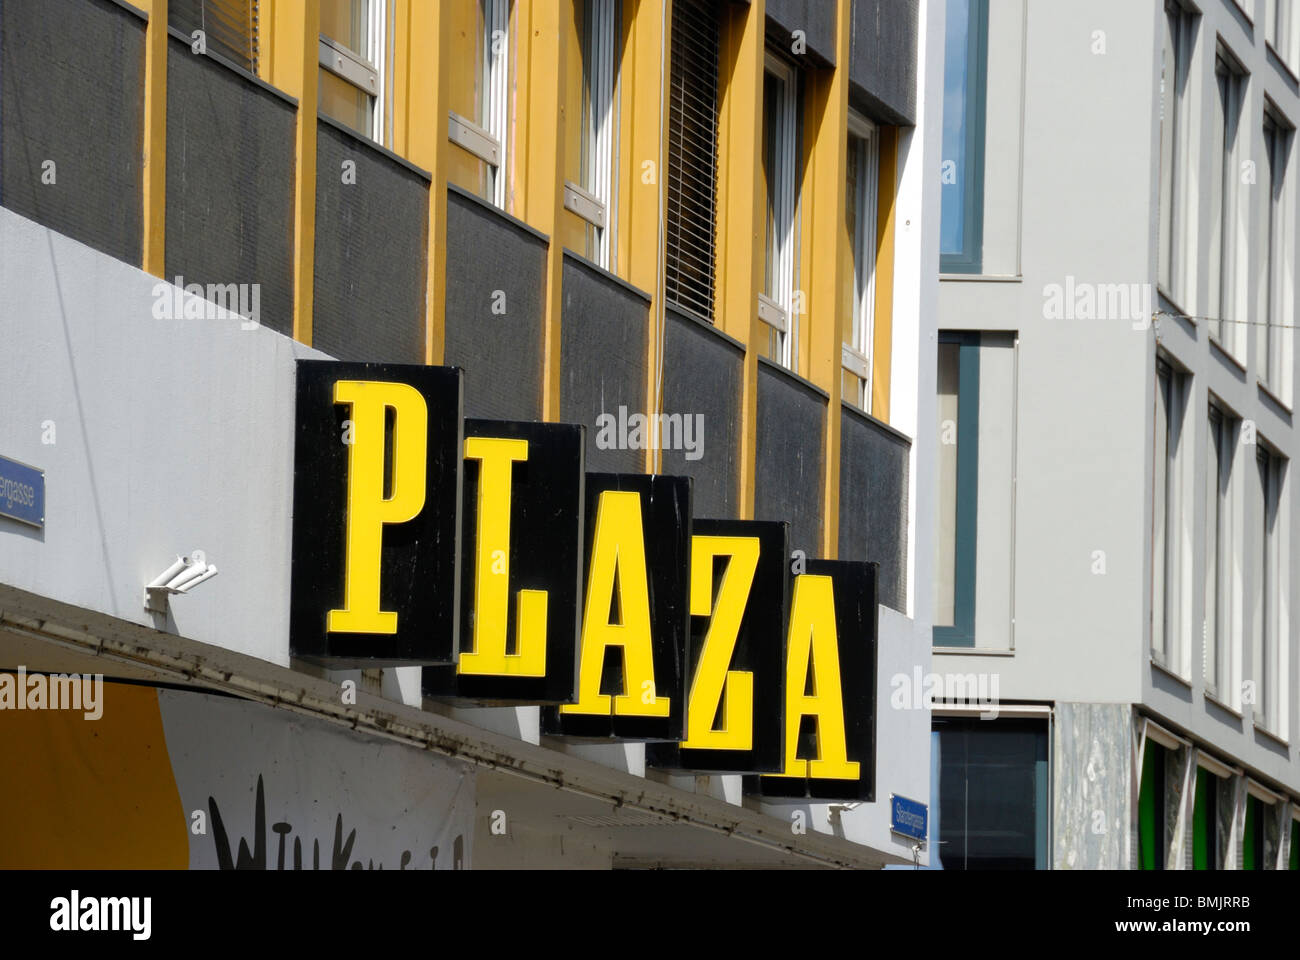 Cinema Pathé Plaza, Basel, Switzerland - Stock Image